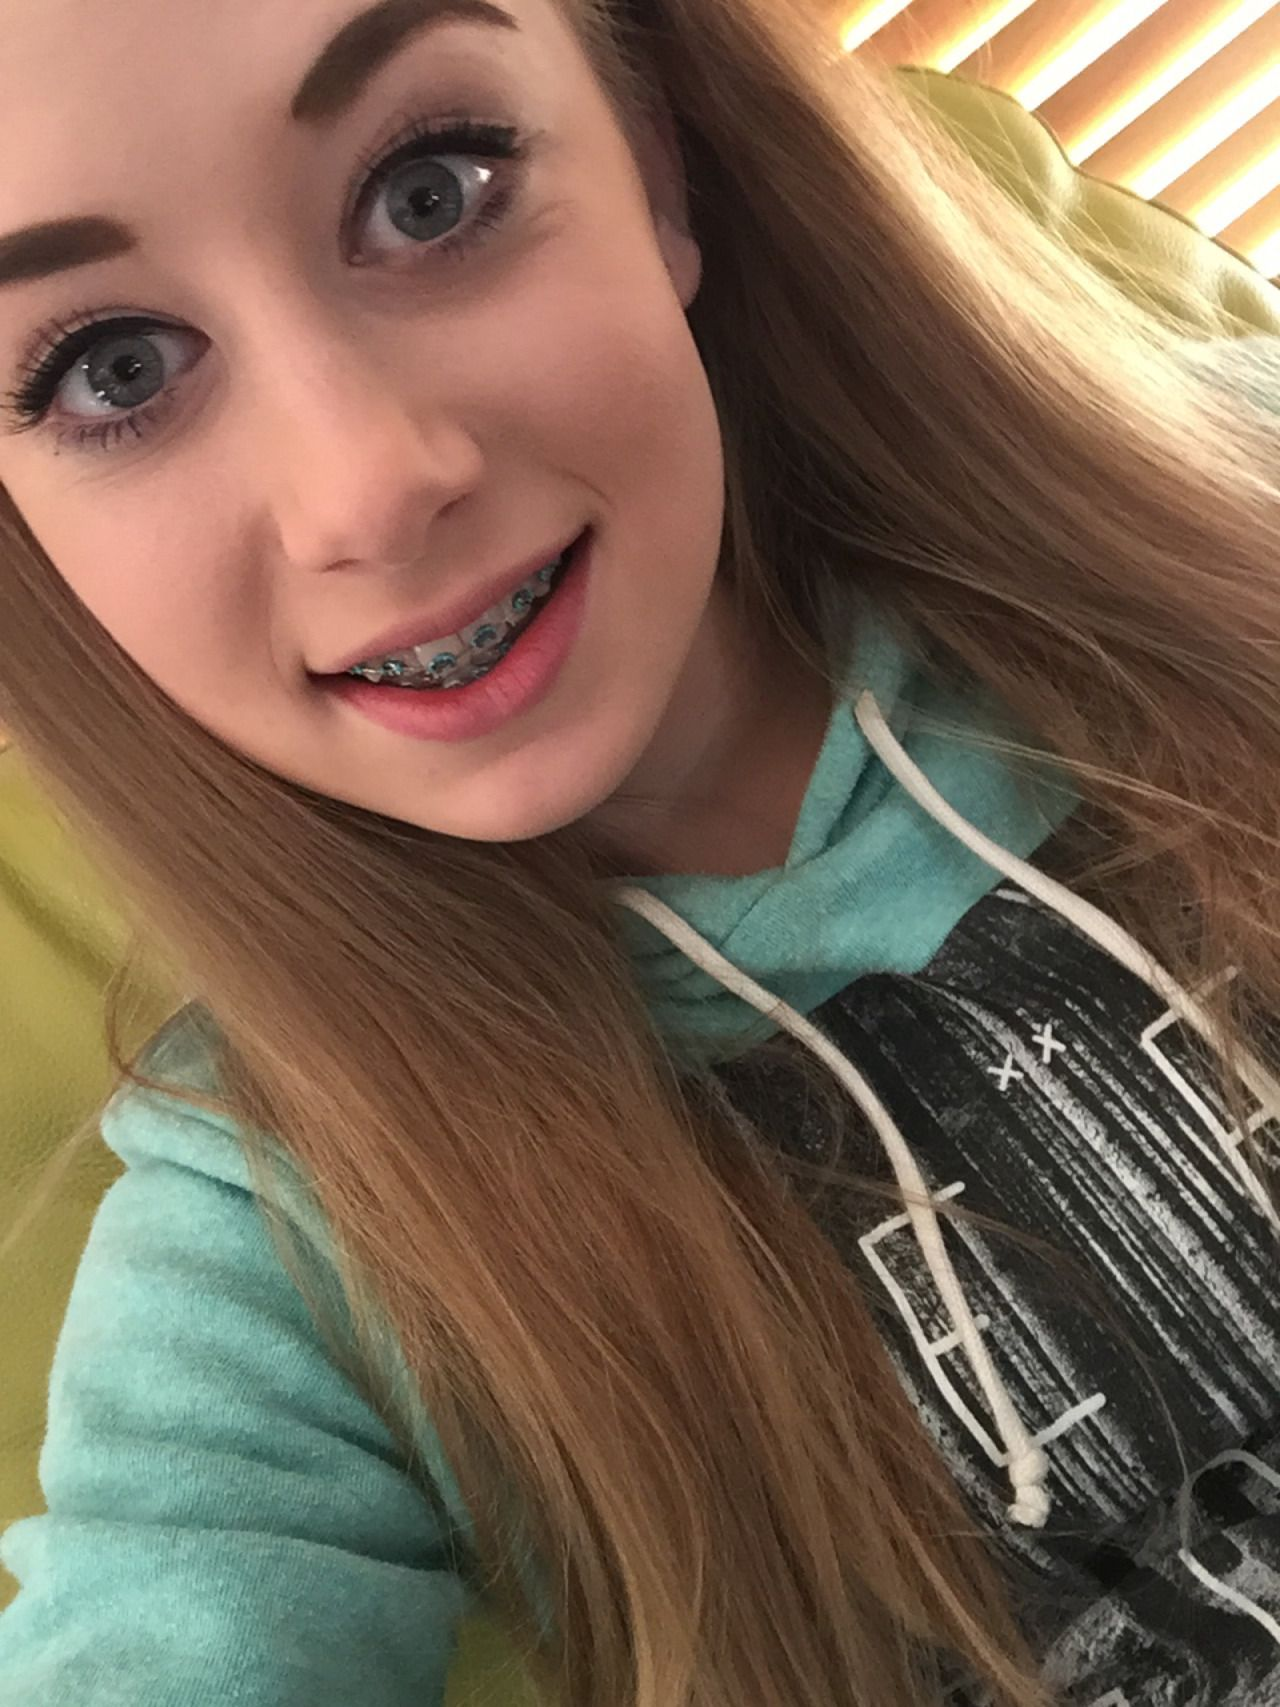 Young teen facial with braces